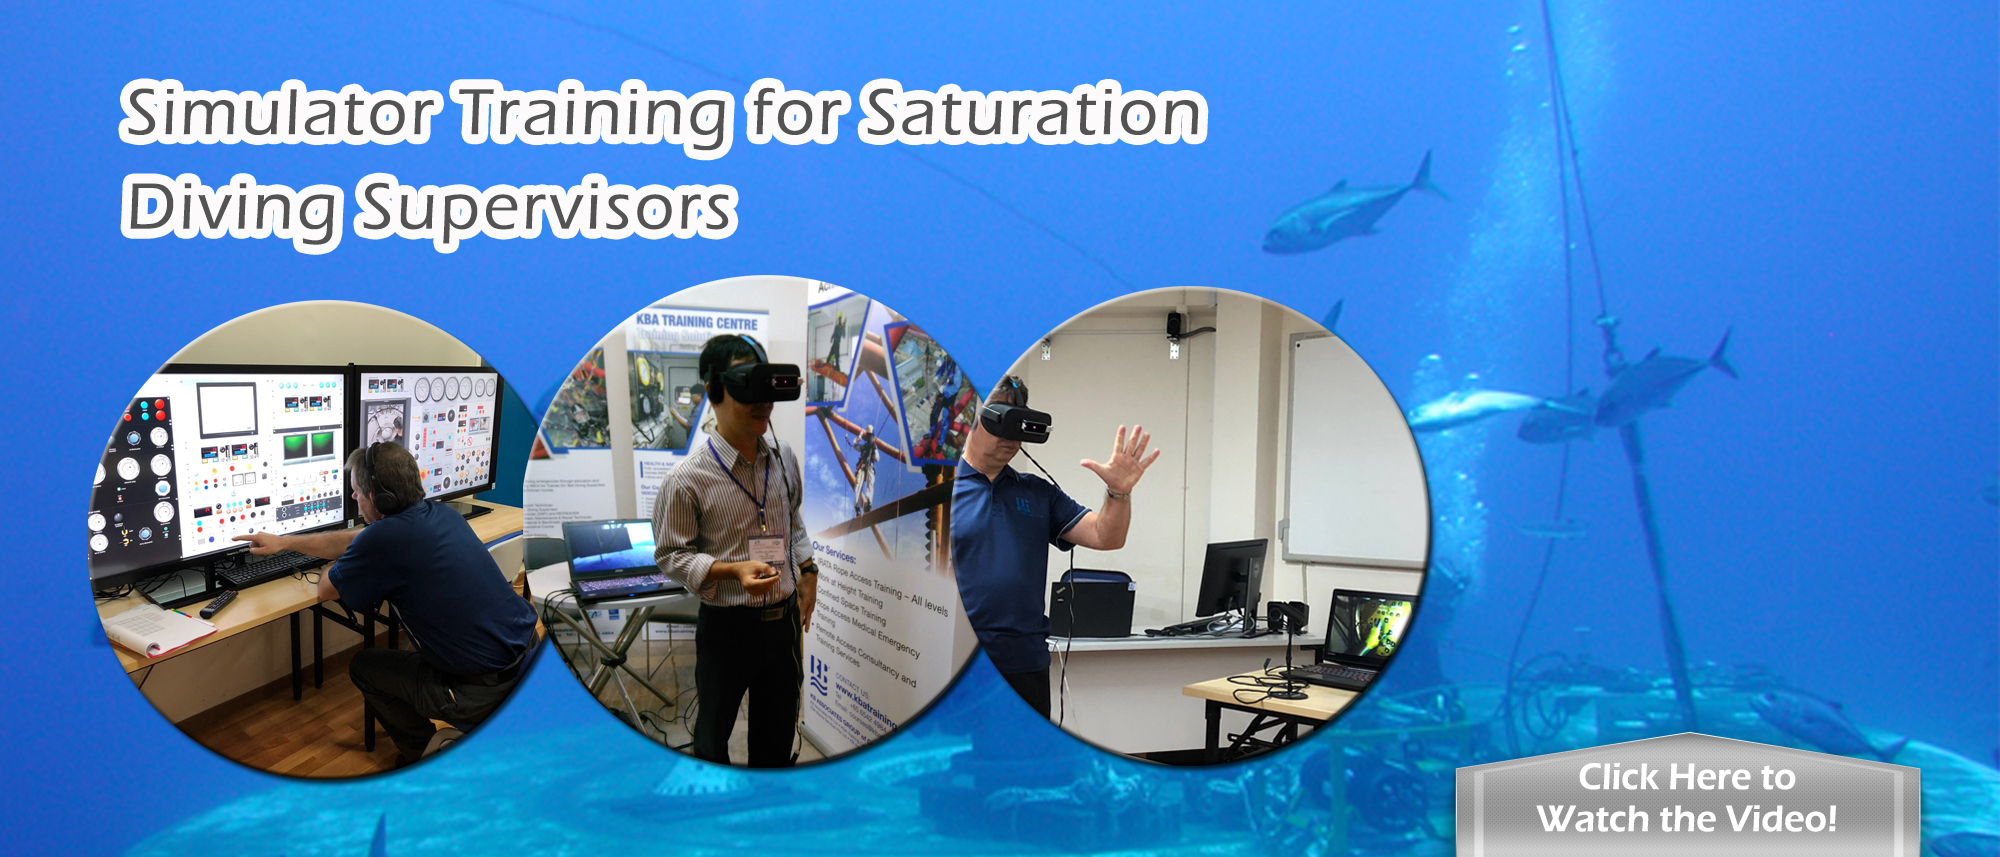 Simulator Training for Saturation Diving Supervisors